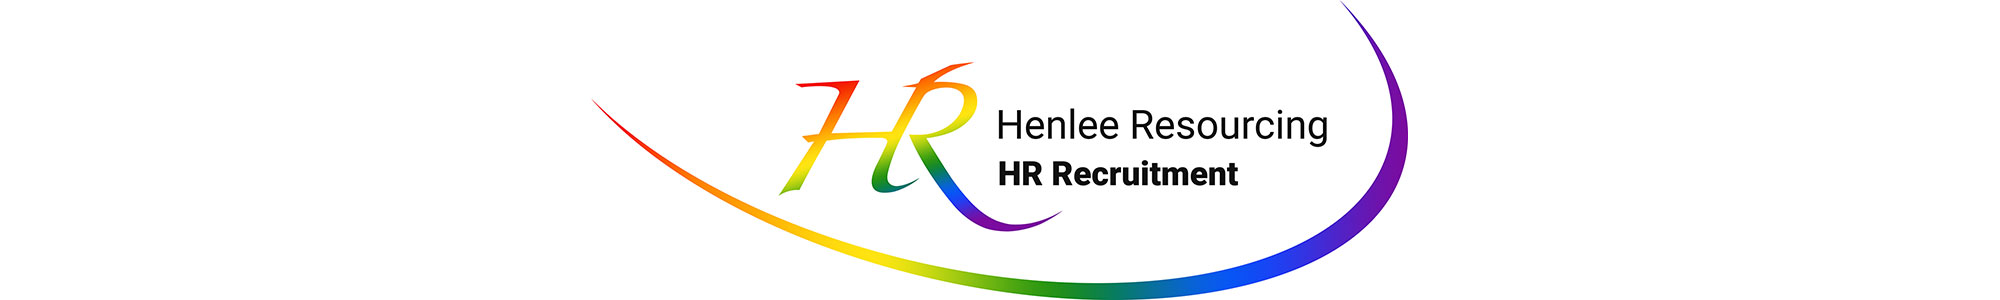 Henlee Resourcing